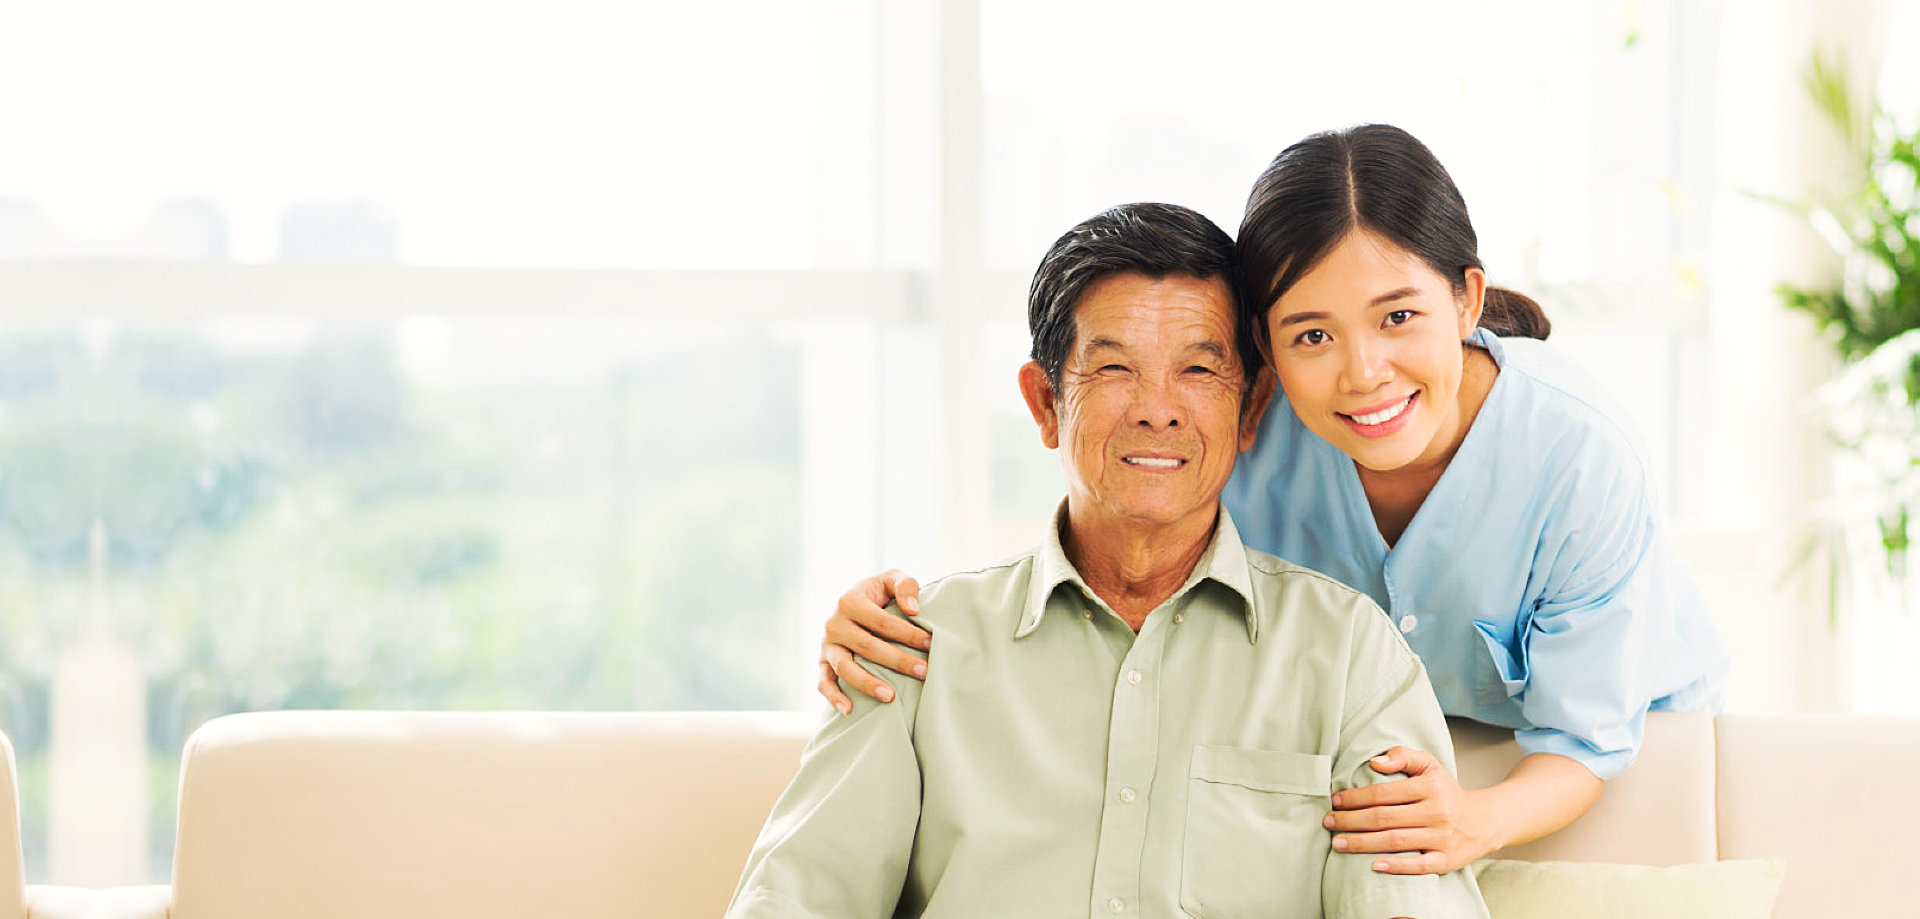 a caregiver and a senior man sitting on a sofa smiling